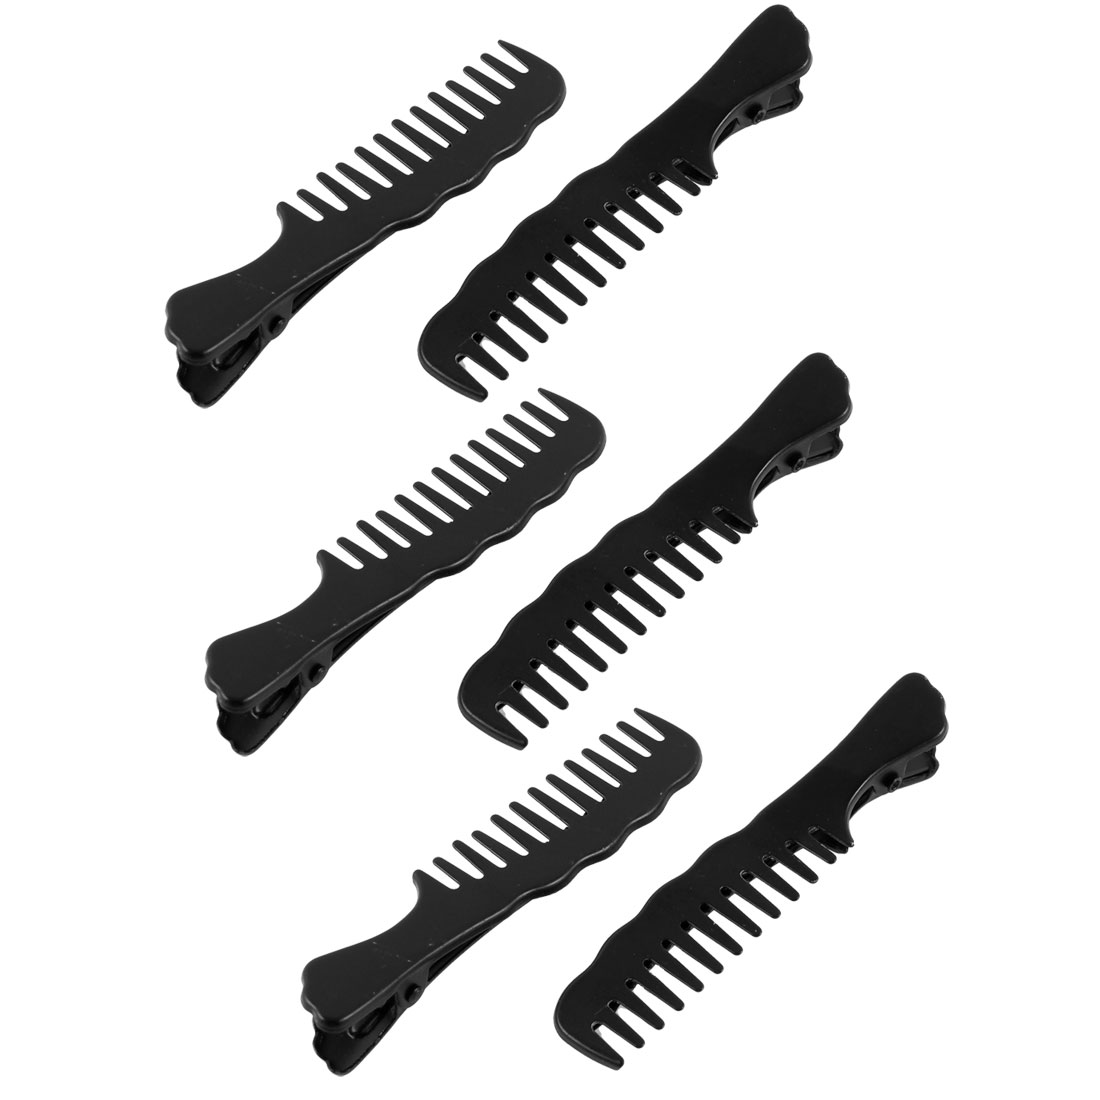 Spring Loaded Single Comb Design Large Beak Hair Clips Alligator Barrette 6 Pcs Black